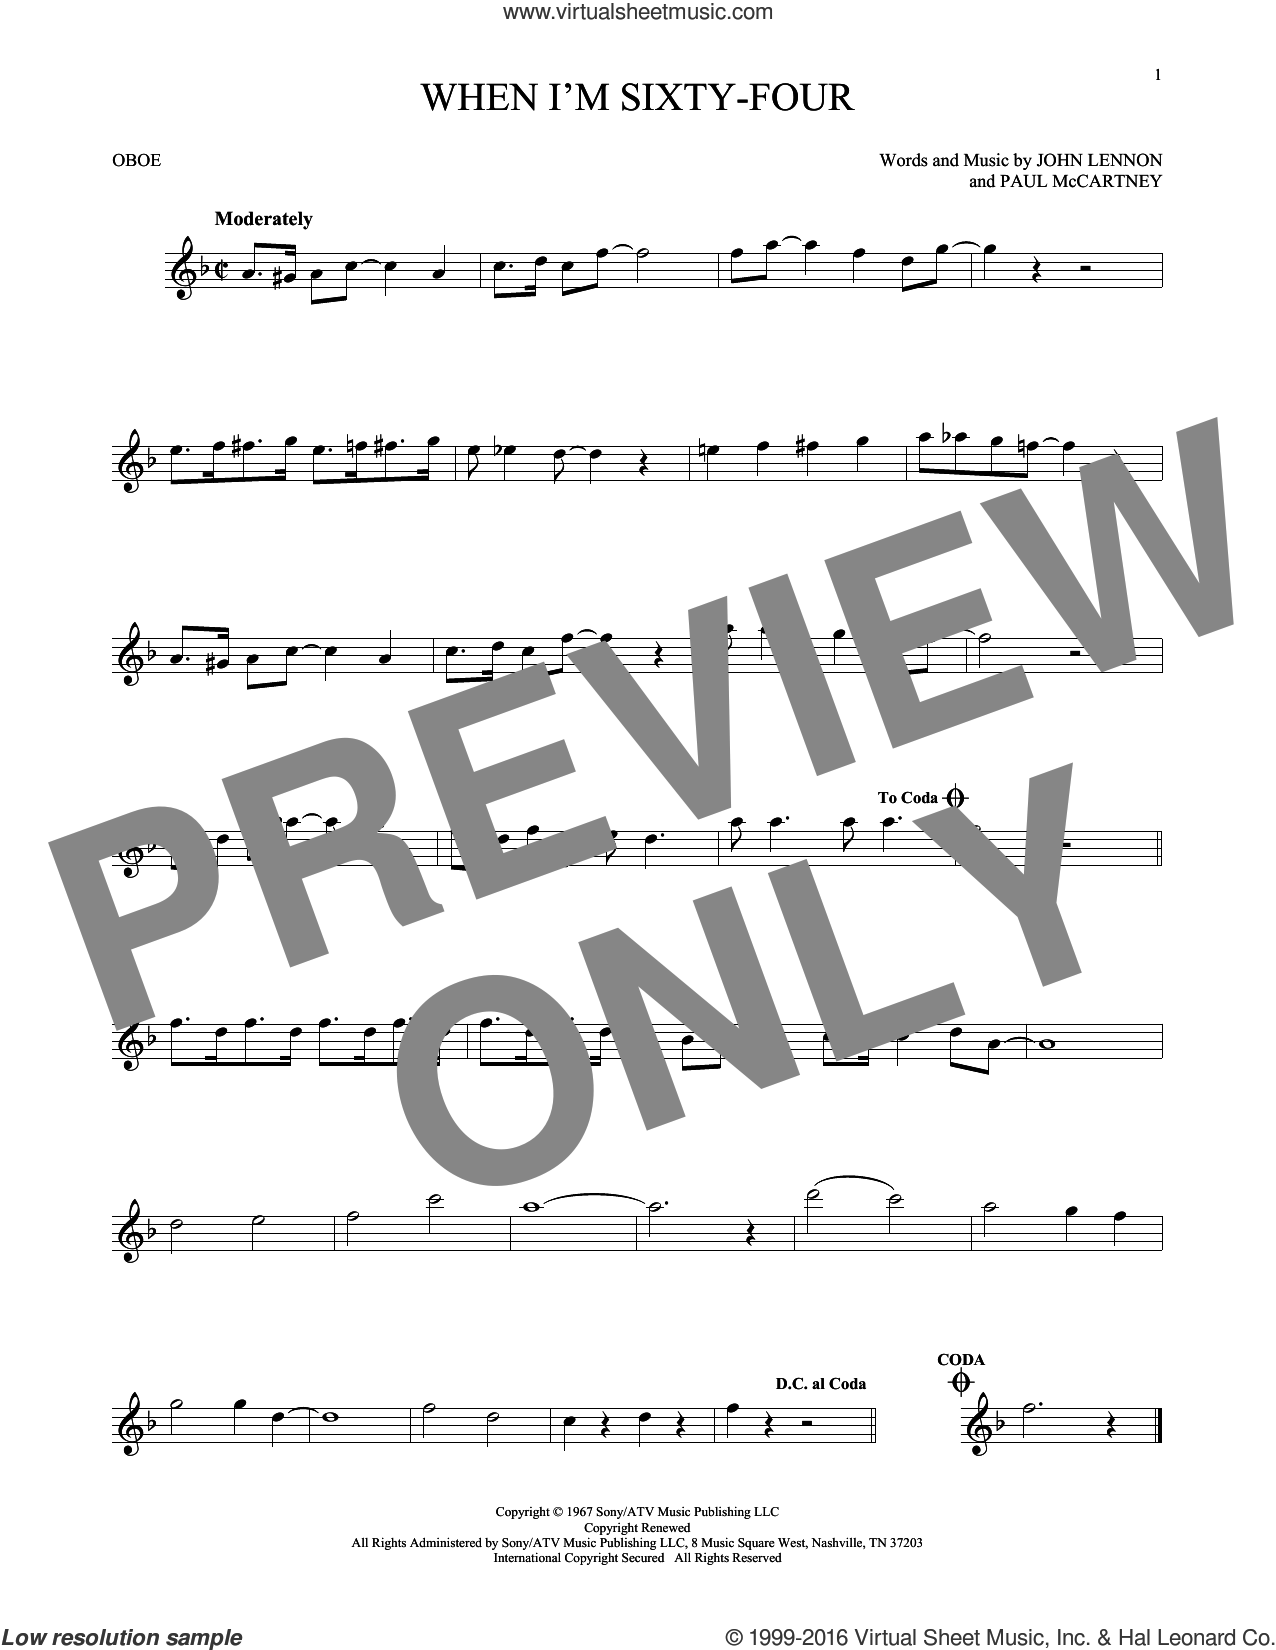 When I'm Sixty-Four sheet music for oboe solo by The Beatles, John Lennon and Paul McCartney, intermediate skill level